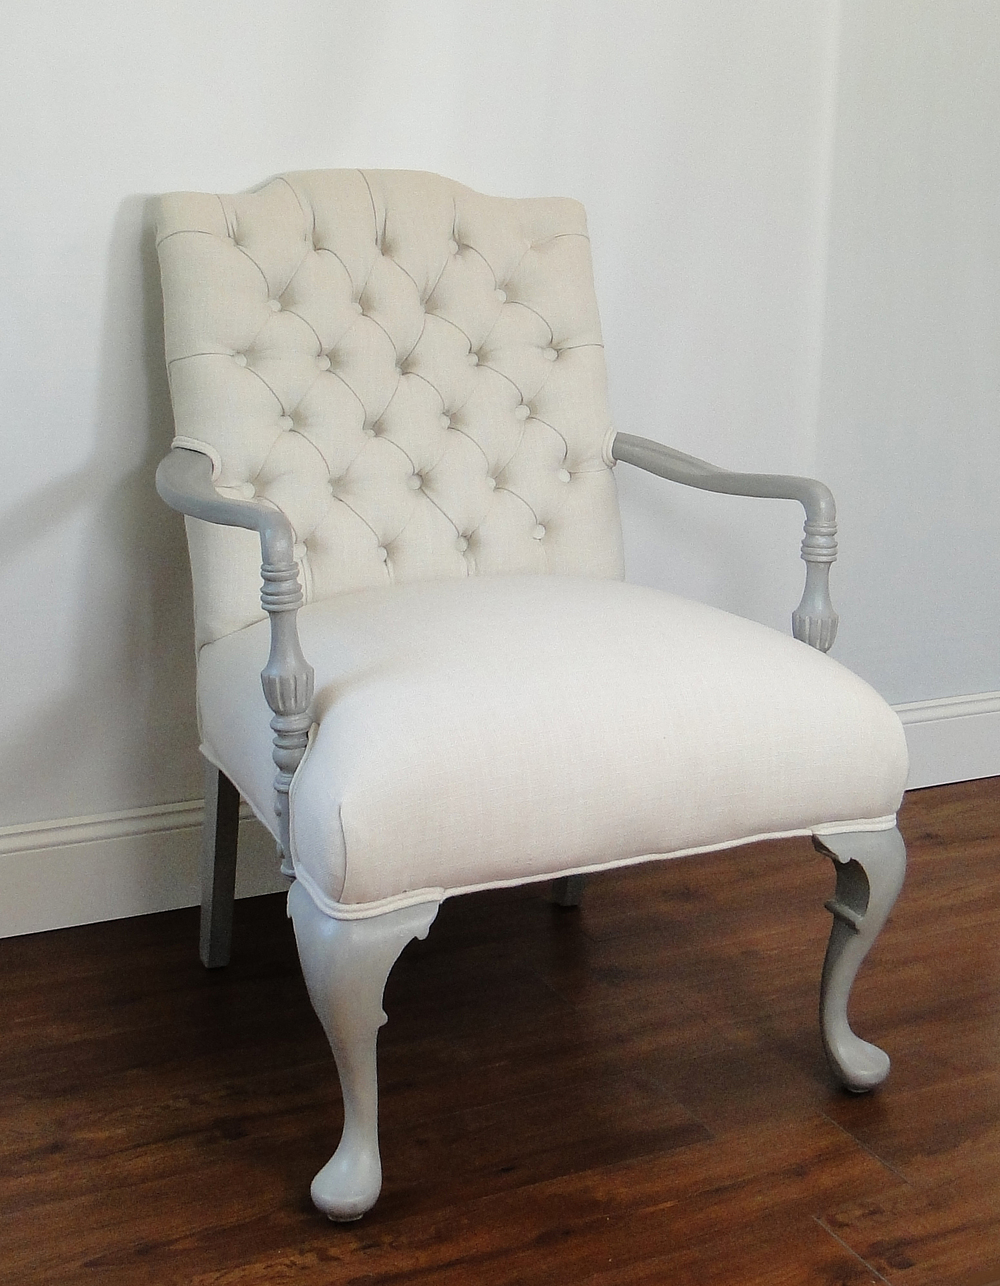 """After"" view of re-imagined chair"